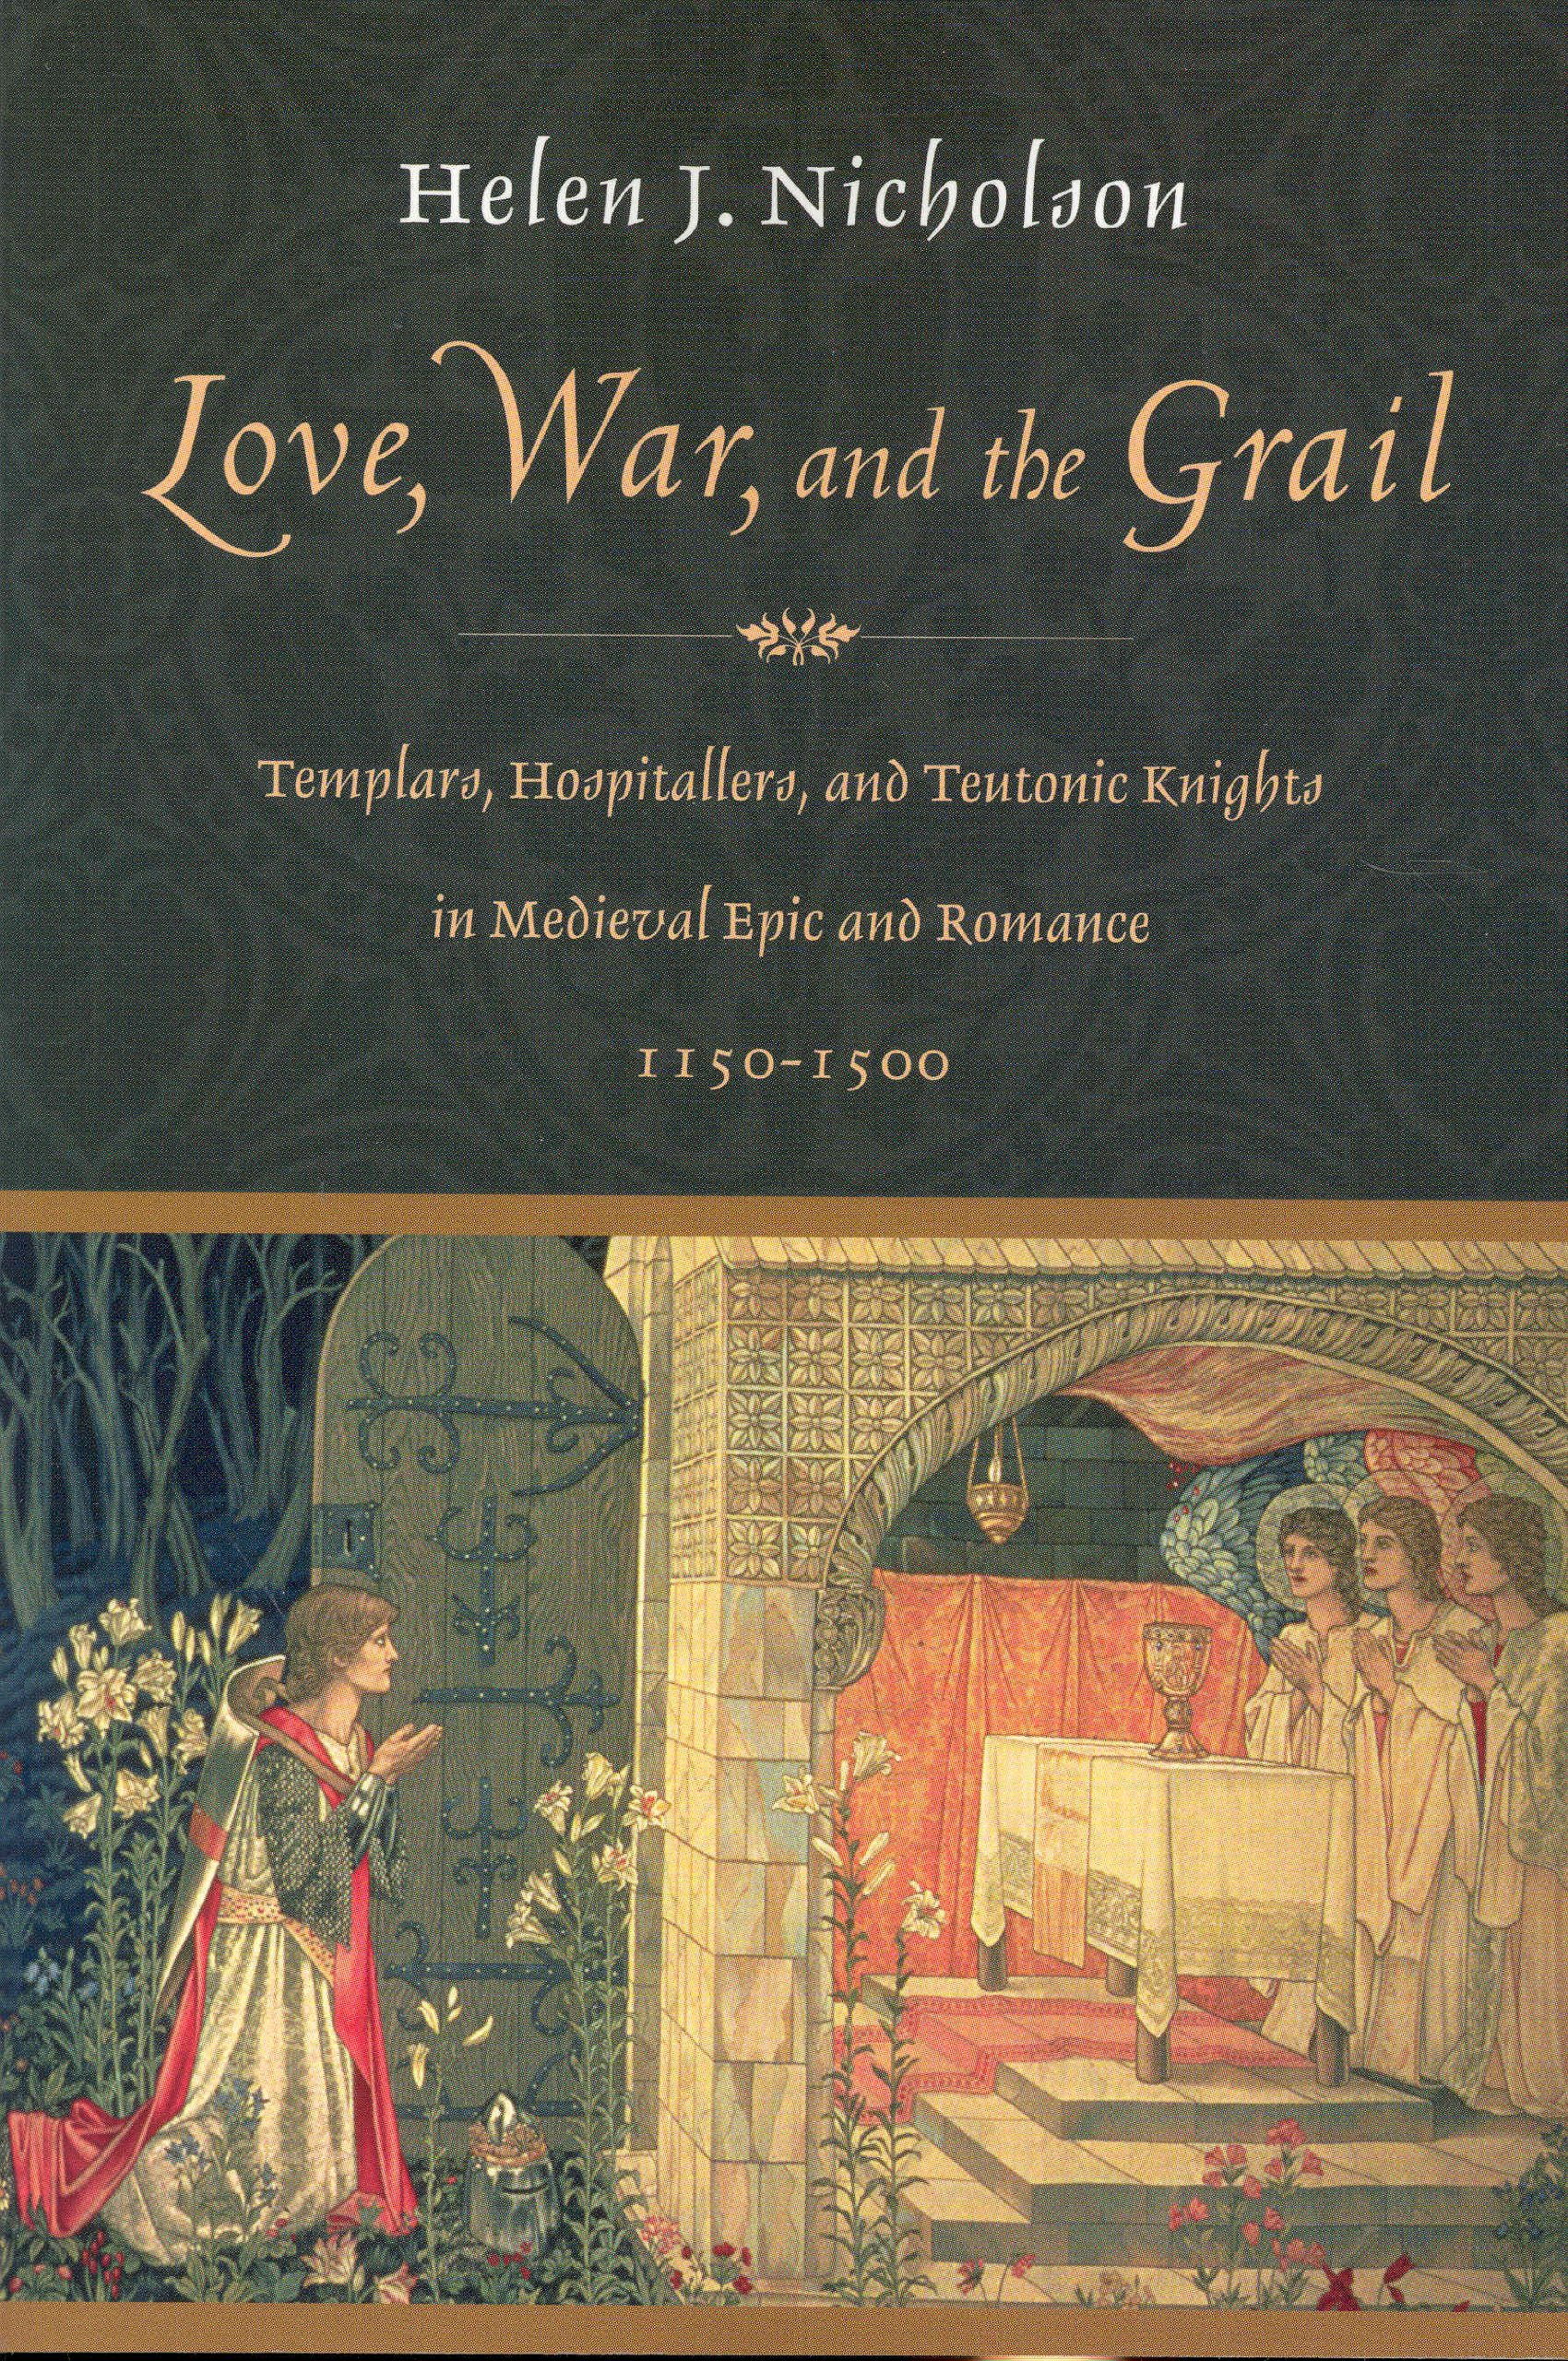 Love, War and the Grail: Templars, Hospitallers and Teutonic Knights in Medieval Epic and Romance 1150-1500